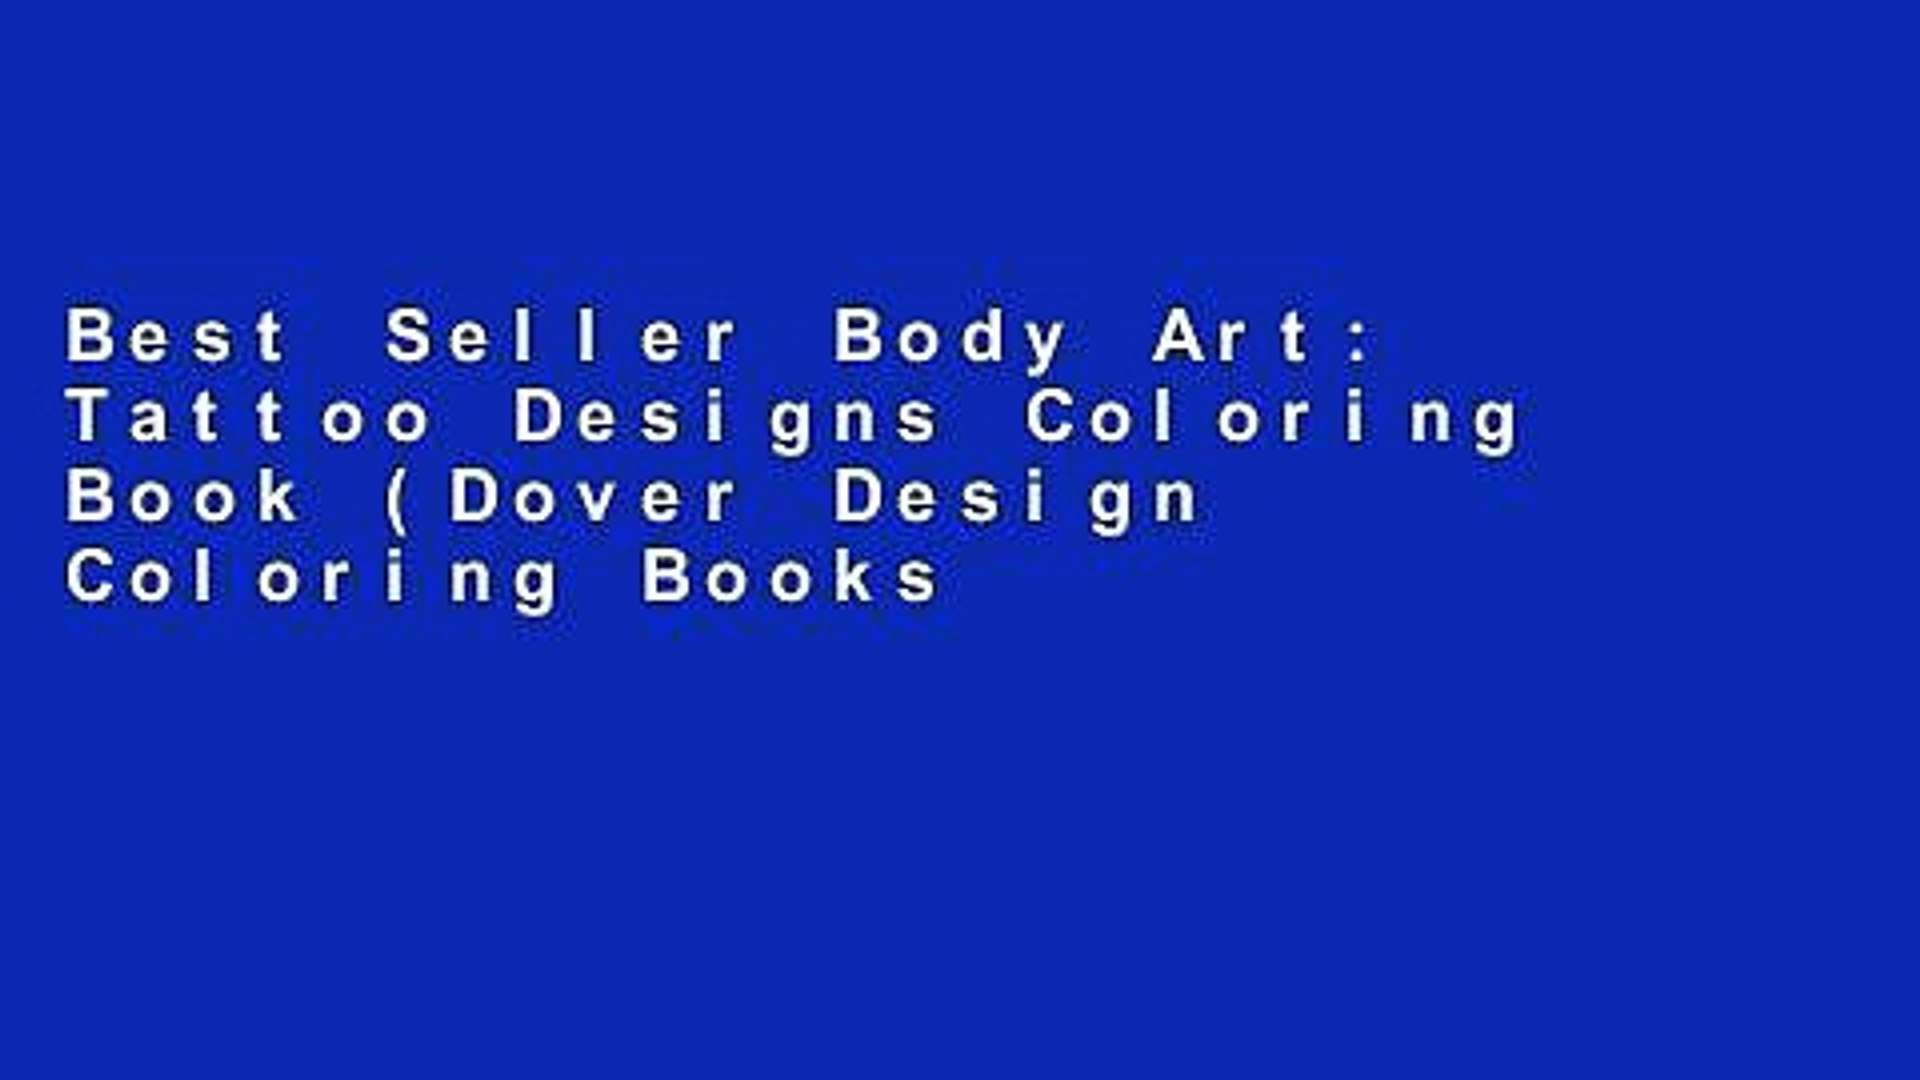 Best Seller Body Art: Tattoo Designs Coloring Book (Dover Design Coloring  Books) Free Read